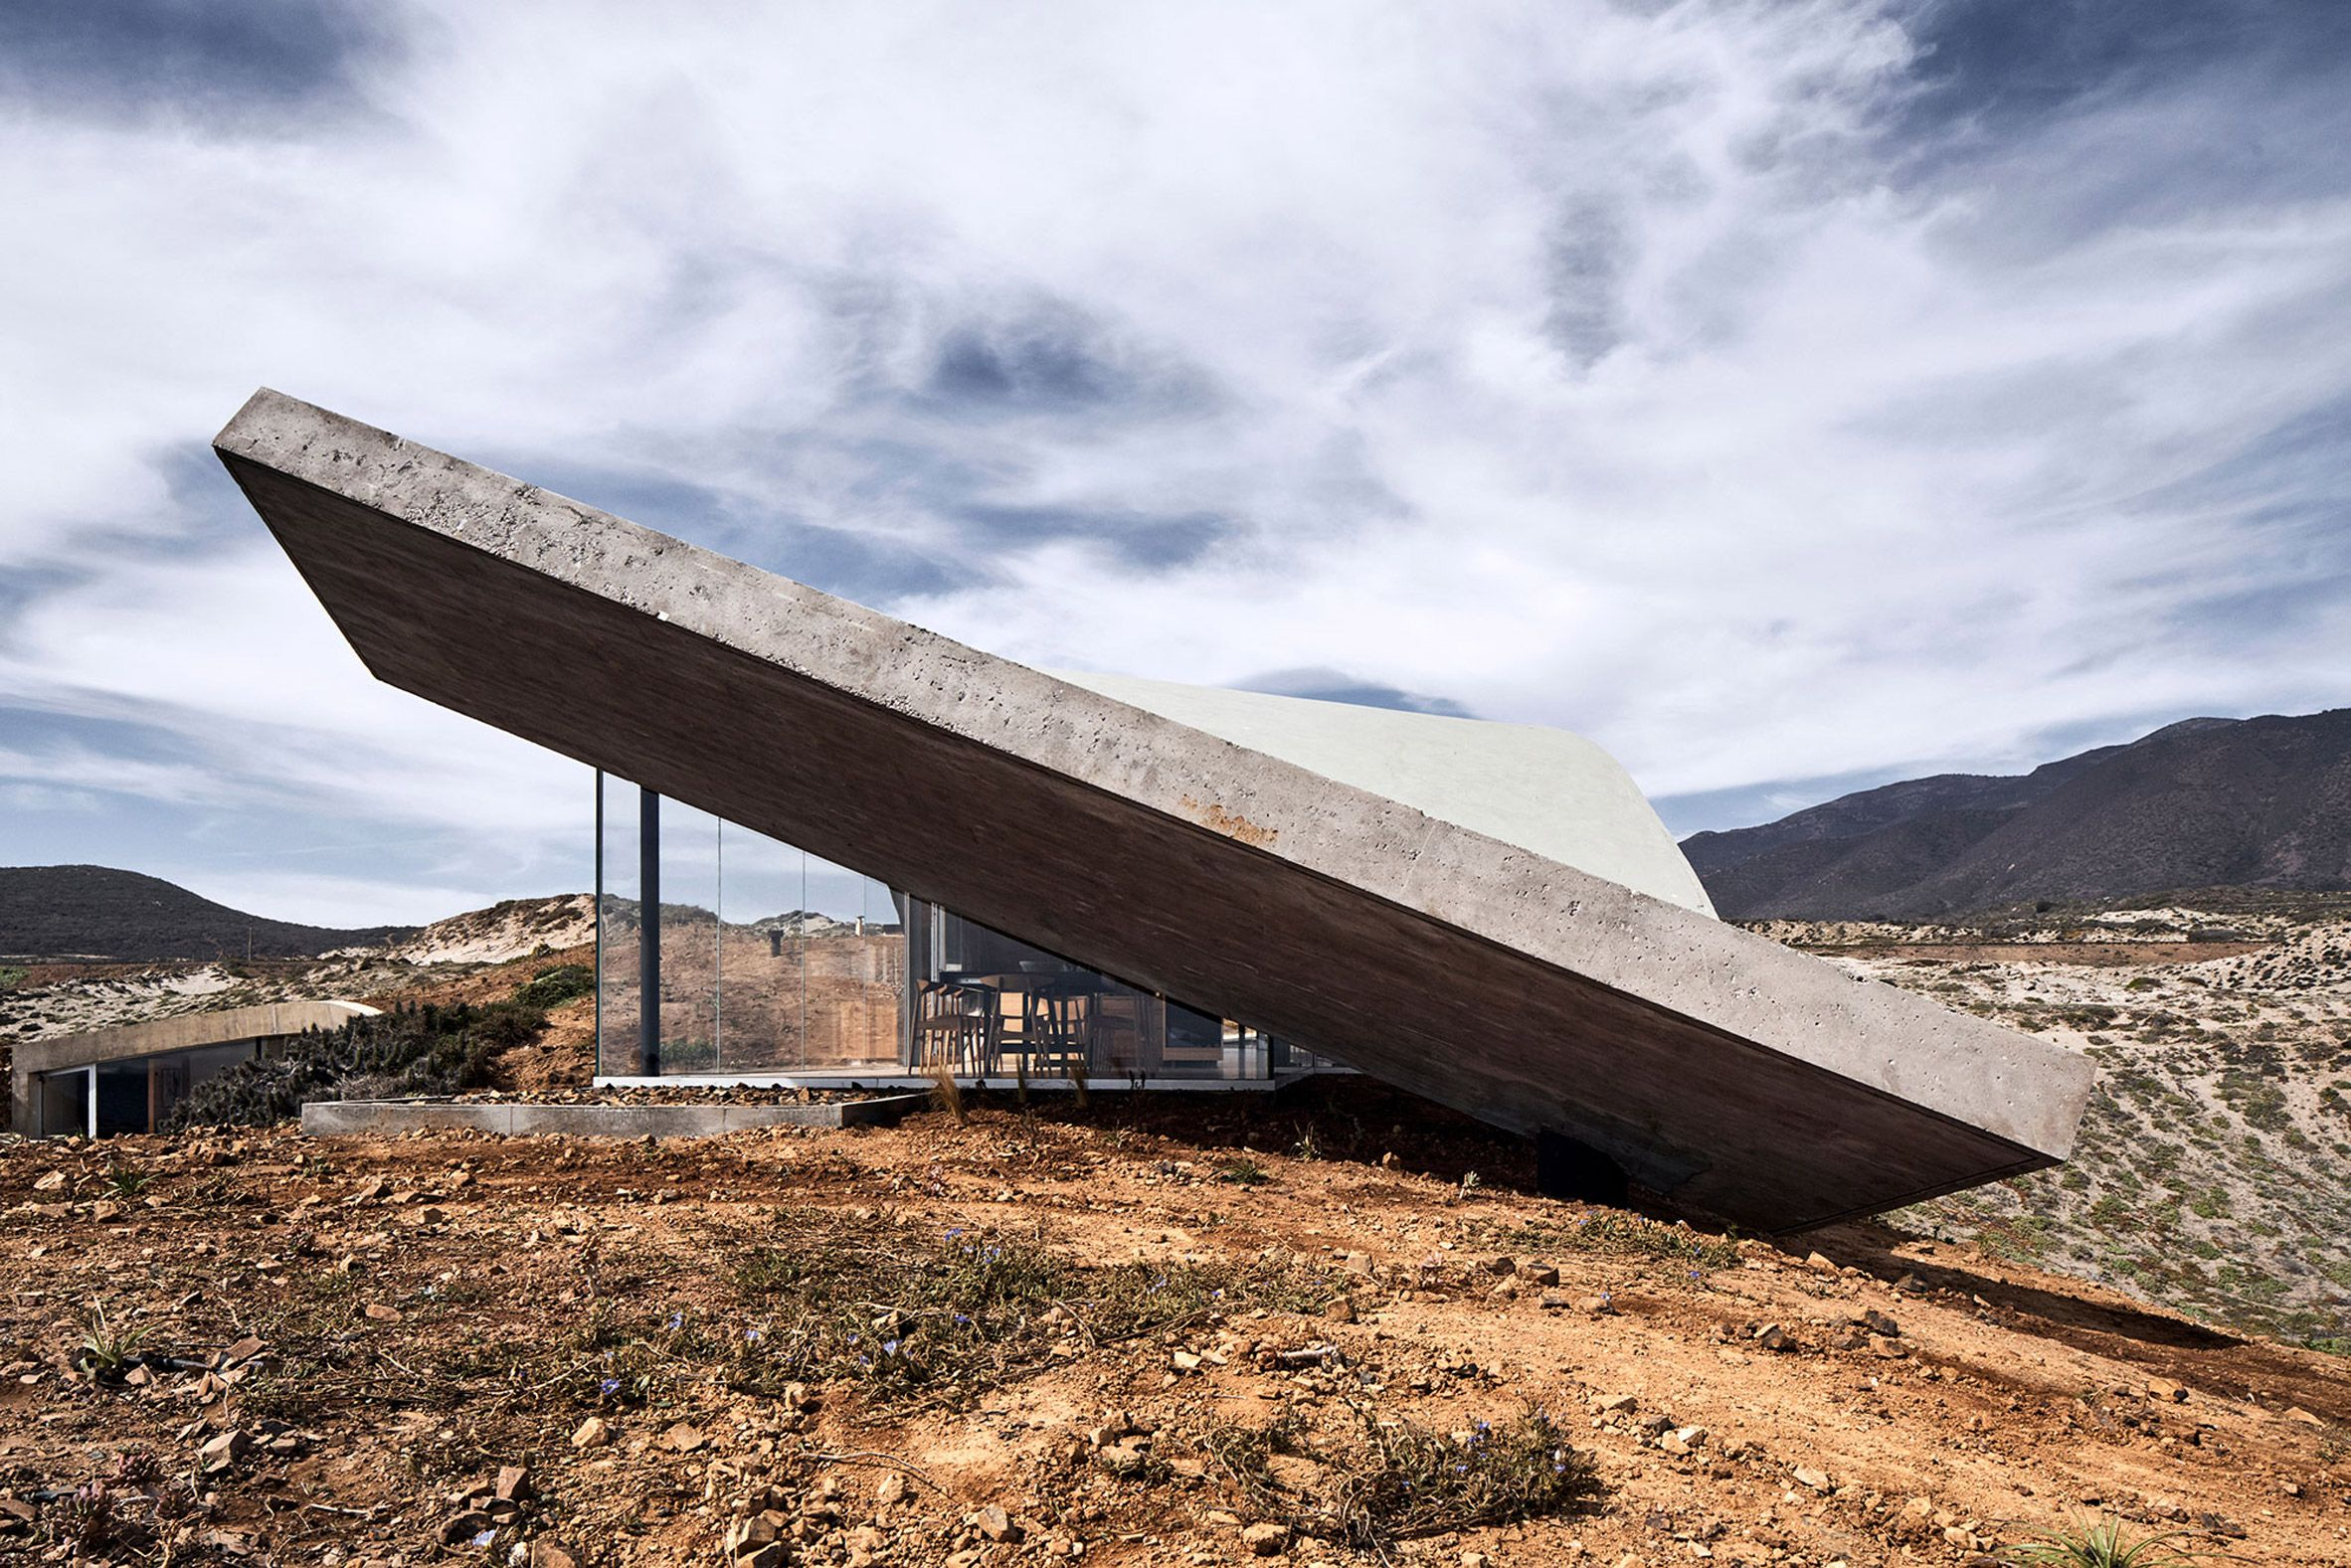 Wavy Concrete Roof Covers Weekend Retreat In Chile By Ryue Nishizawa In 2020 Concrete Roof Ryue Nishizawa House In Nature